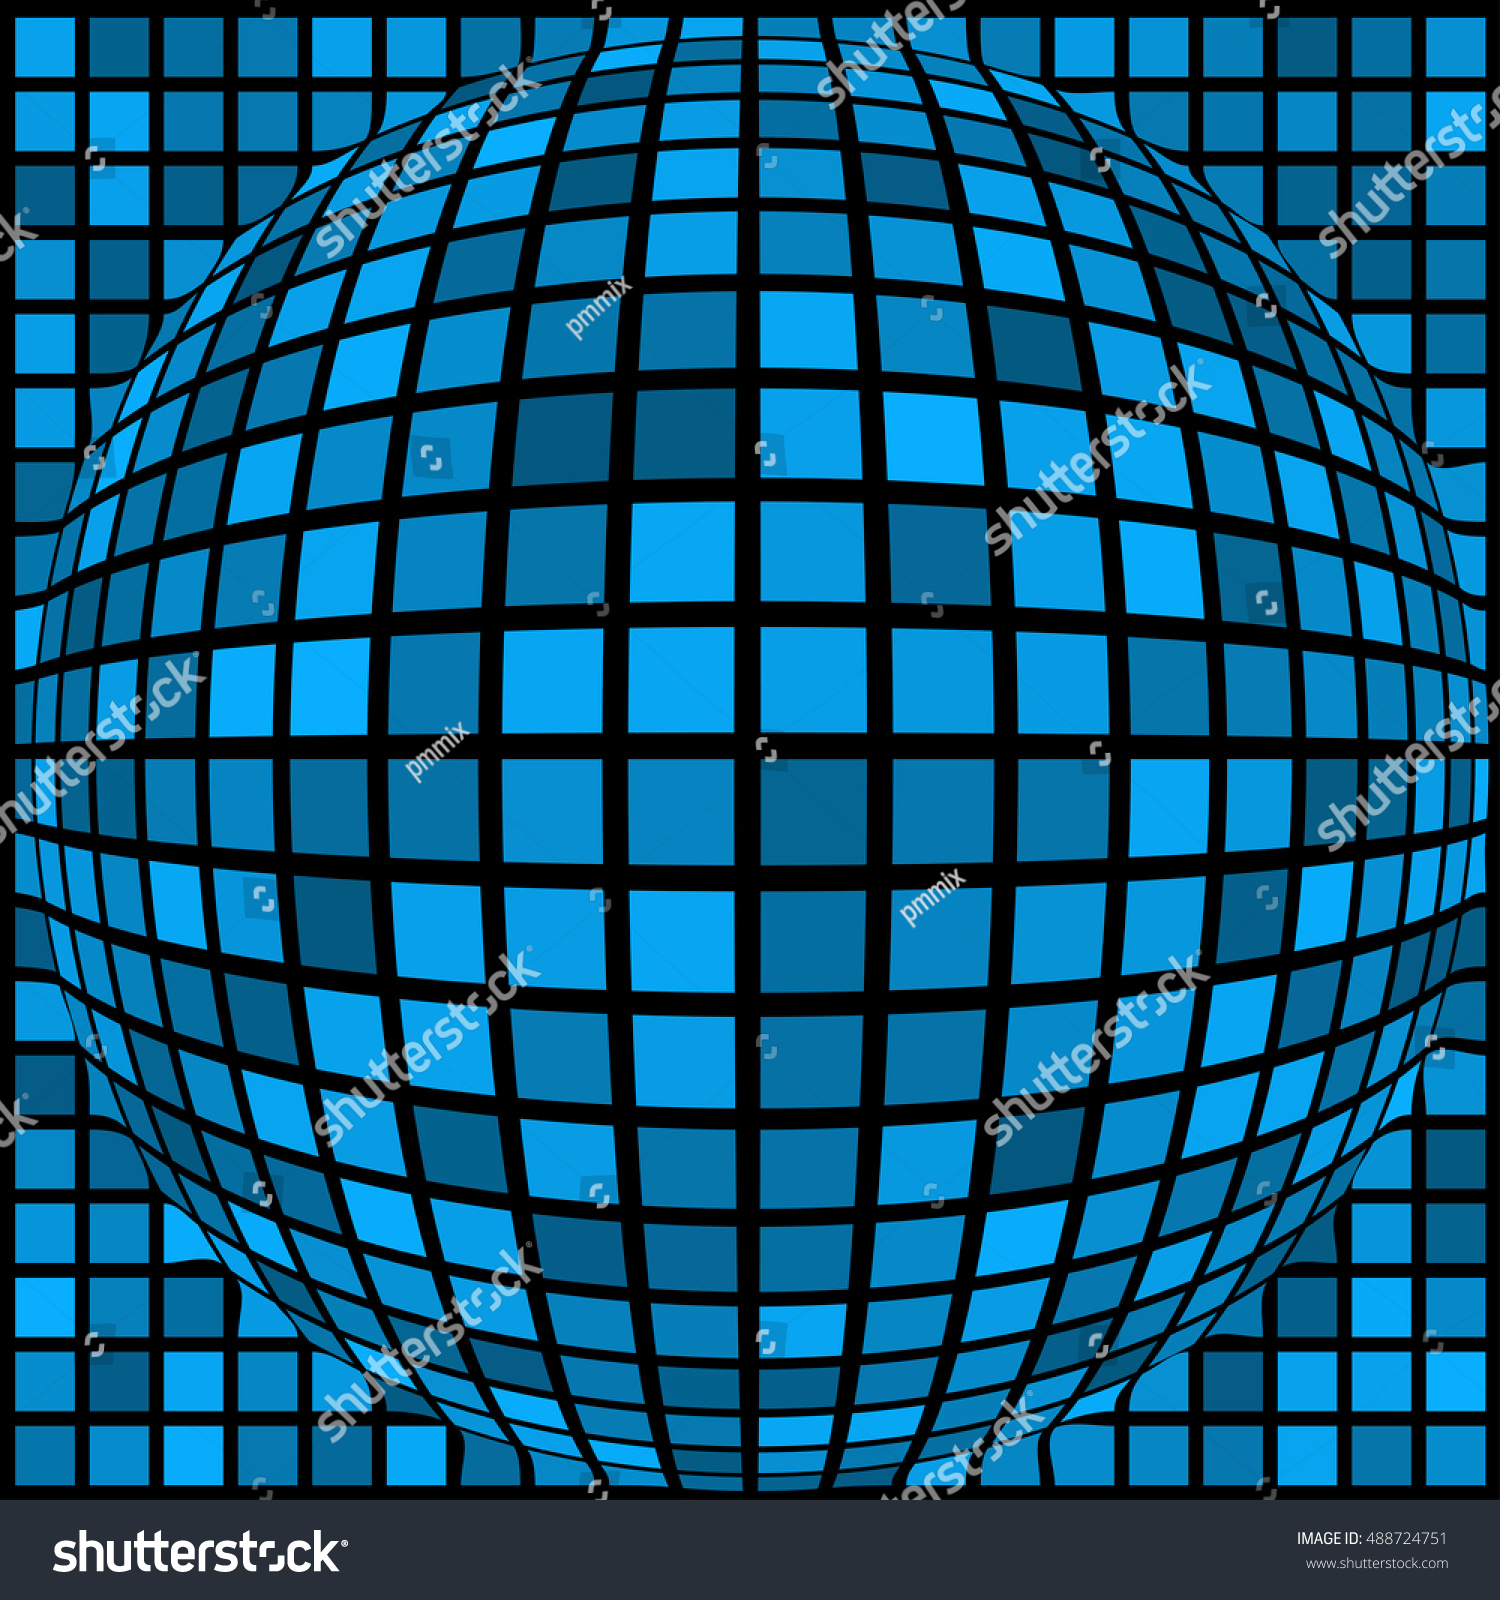 Ball Blue Squares Different Sizes Black Stock Vector 488724751 ...